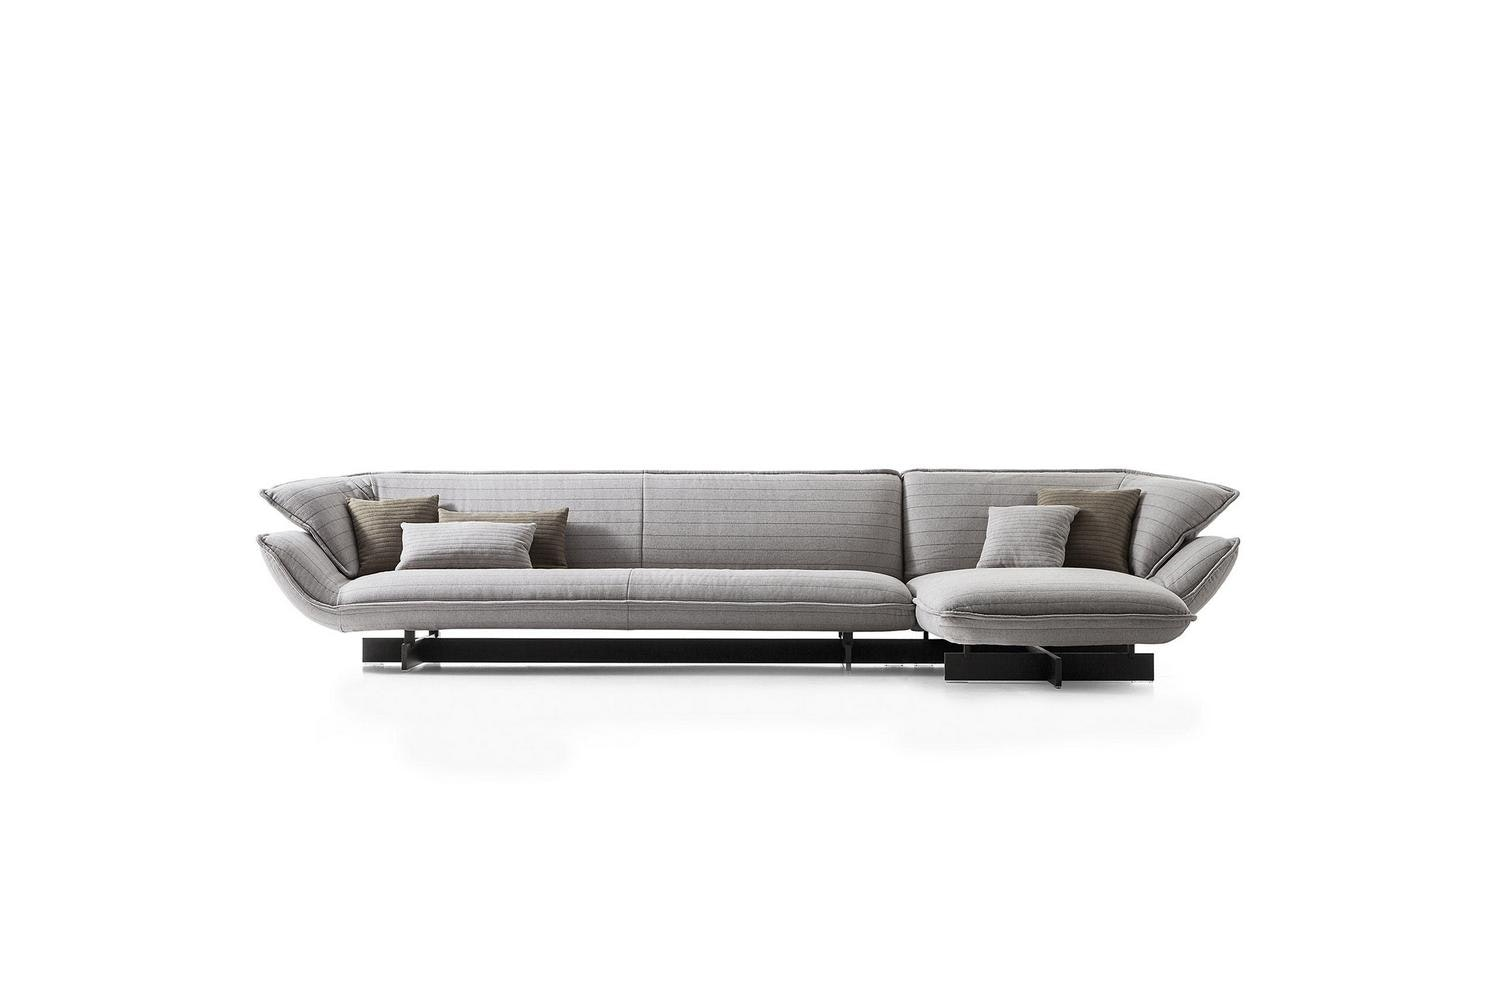 550 Beam Sofa System by Patricia Urquiola for Cassina